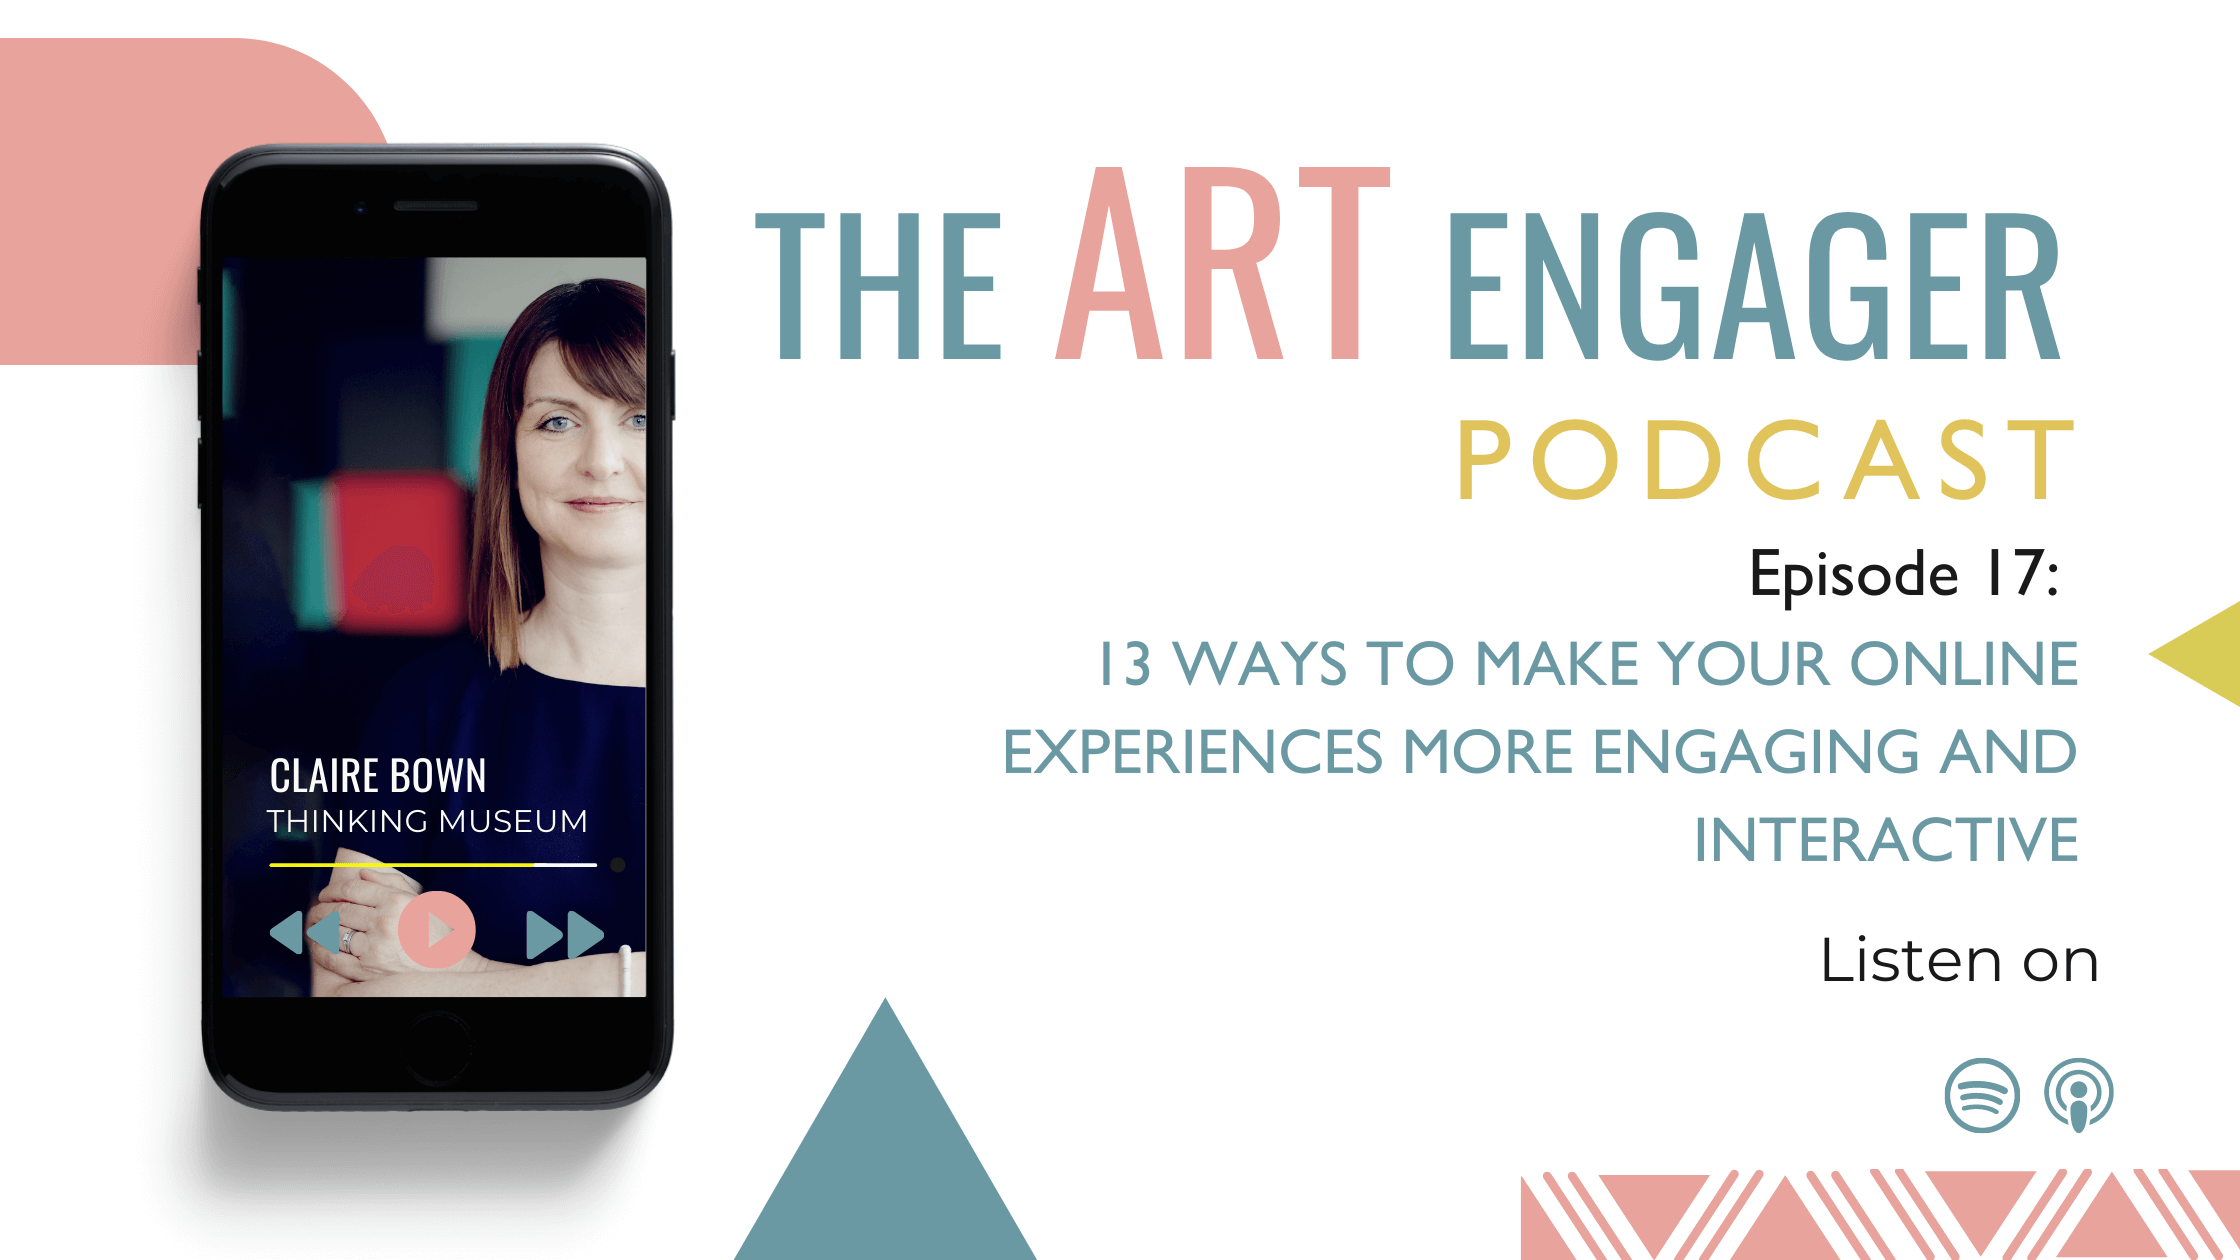 13 Ways to Make your Online Experiences More Engaging and Interactive